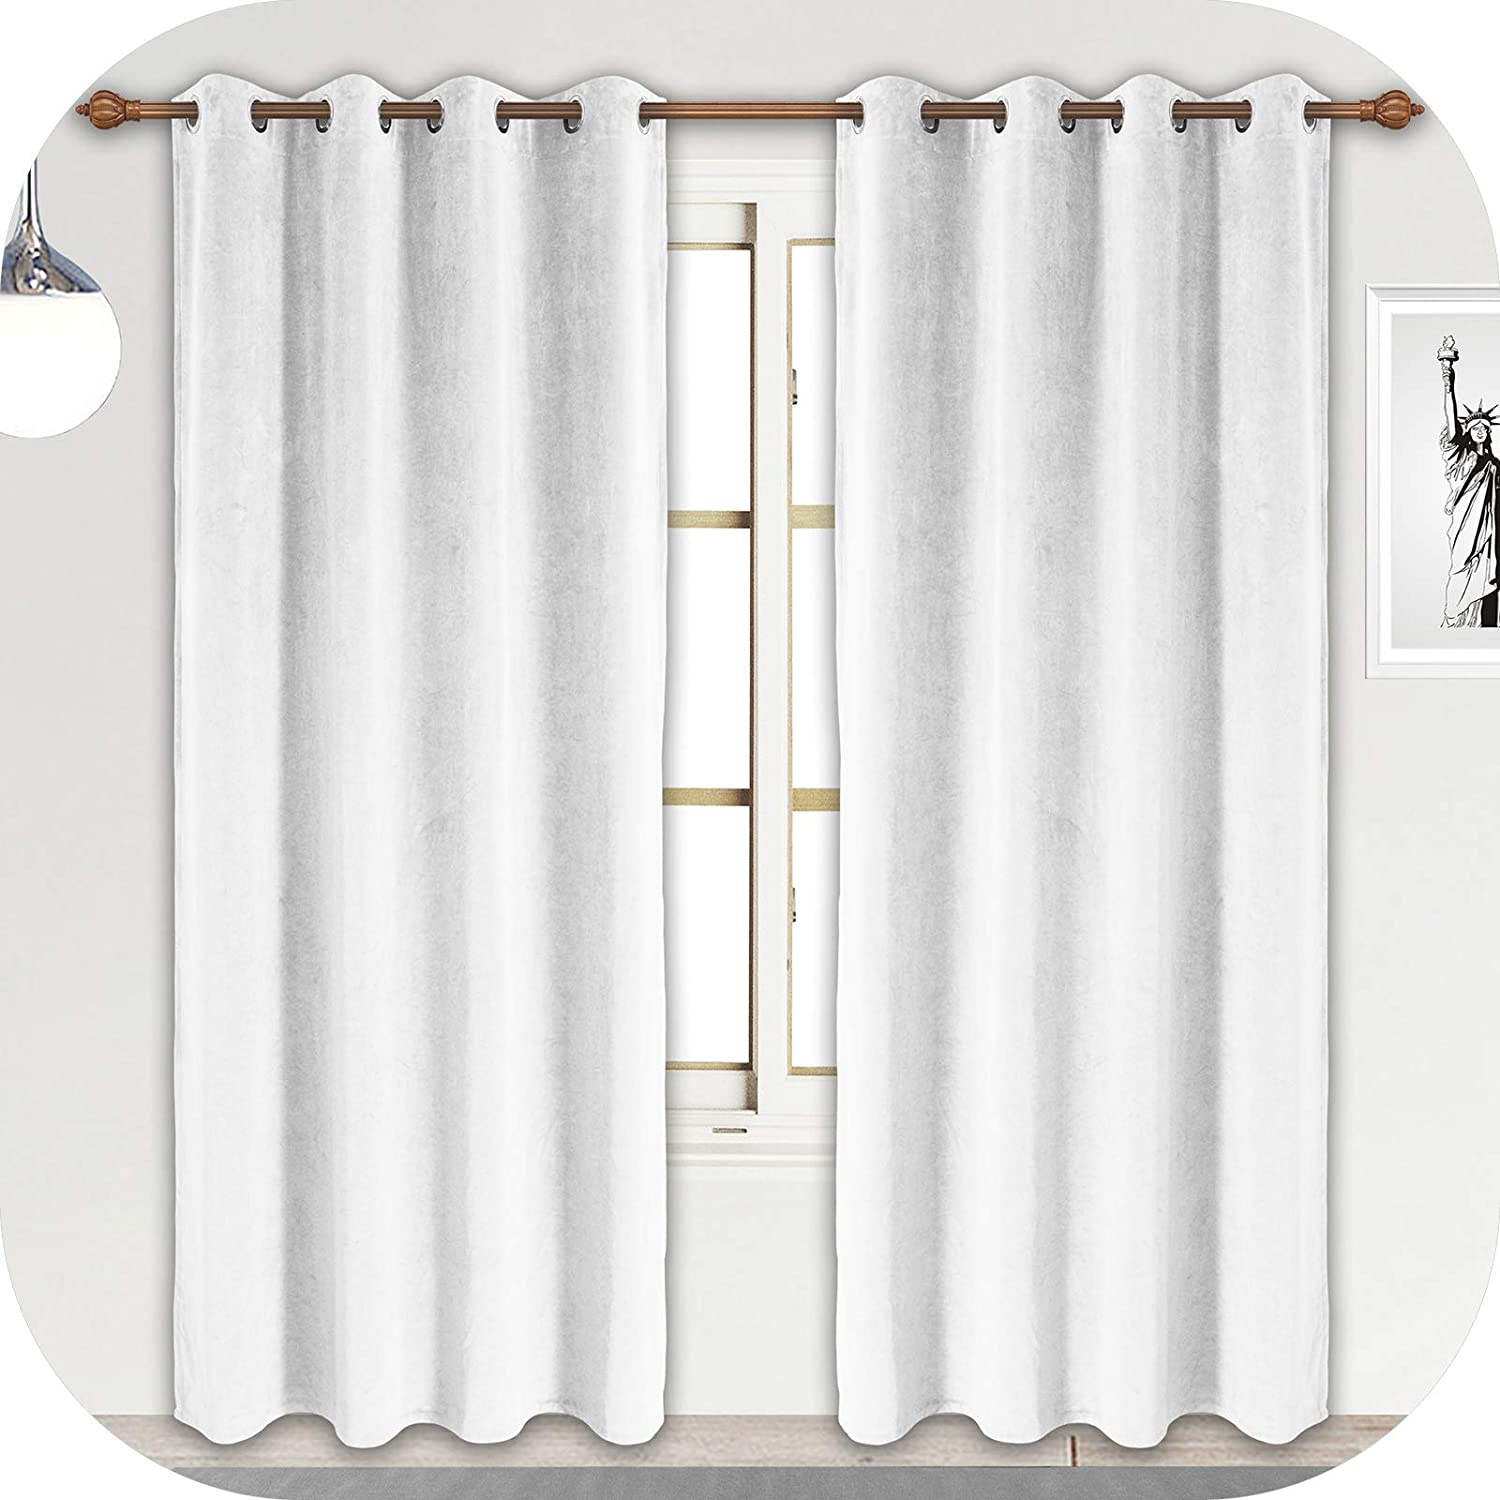 ZHAOFENG White Velvet Curtains with Grommet, Blackout SoftLuxury ThickSunlight Dimming Heat InsulatedPrivacy ProtectVelour Drapes for Livingand Dining Room, 2 Panels, W52 x L84 Inches